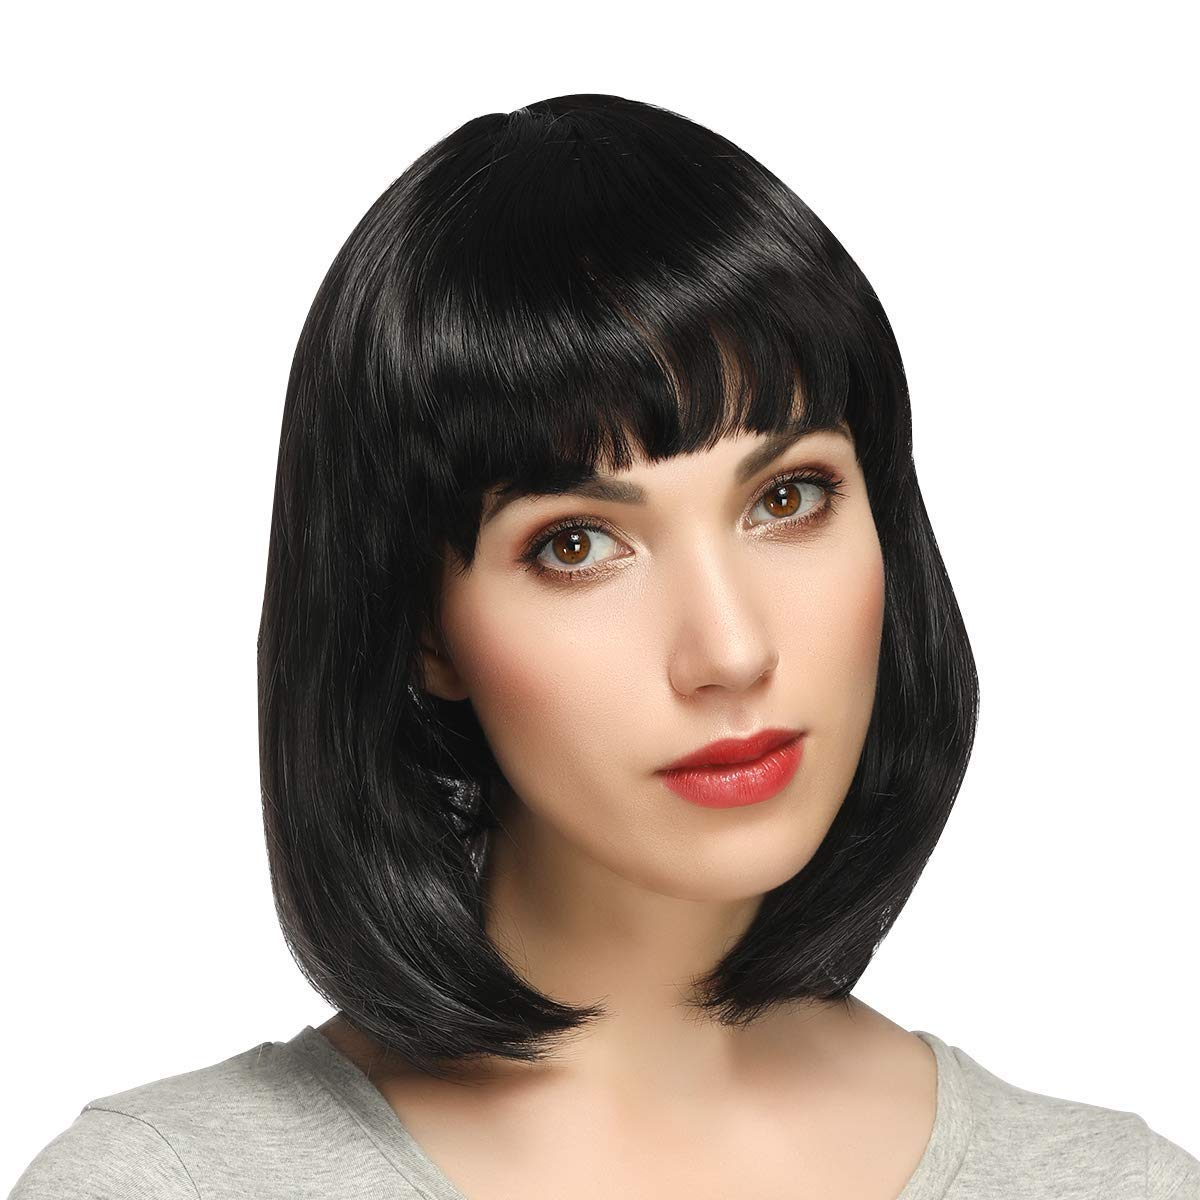 Black Bob Wig - 14 Inches Straight Short Bob Wig with Flat Bangs for Women, Synthetic Cosplay Wig, Natural as Real Hair with Wig Cap, Black